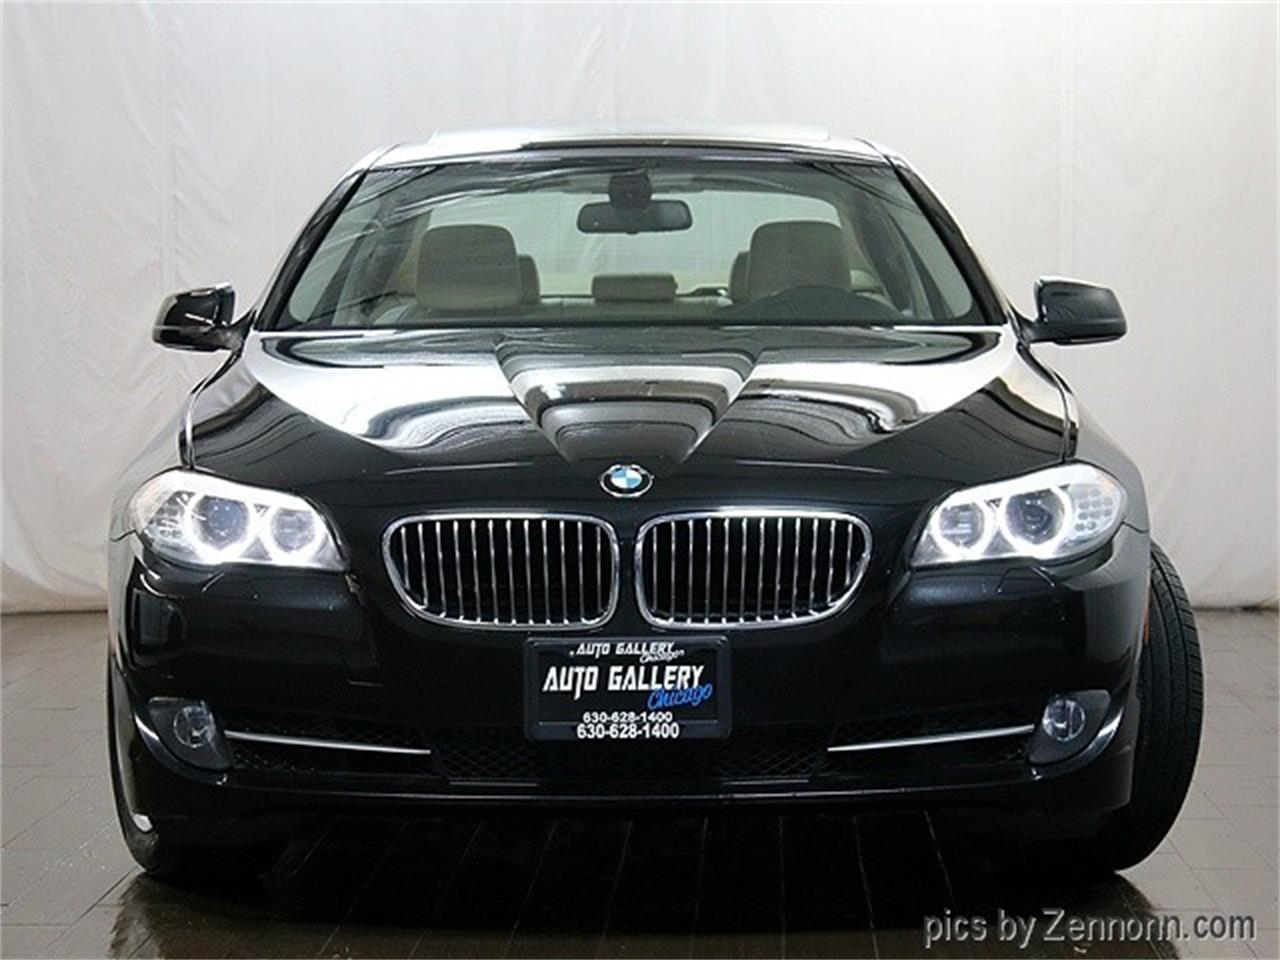 Large Picture of '11 5 Series - $12,790.00 - MZHN